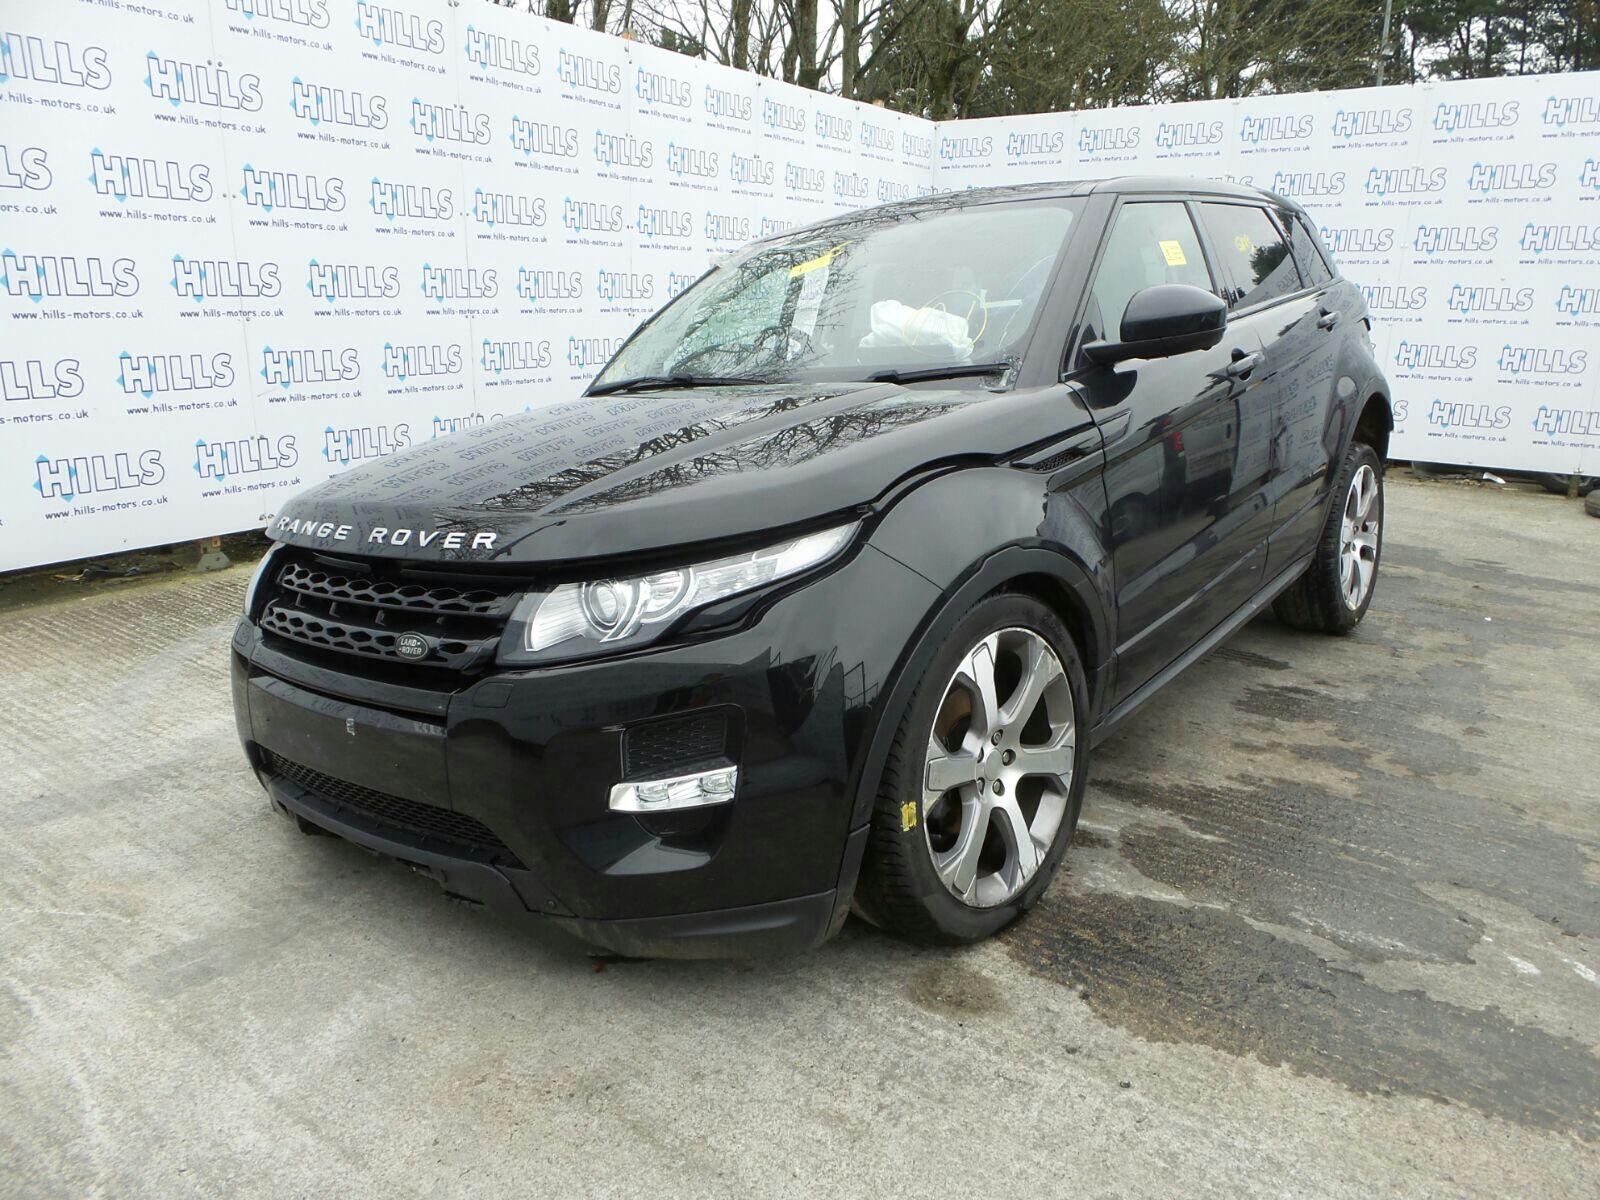 new landrover hse range rover parts evoque in inventory land dynamic door